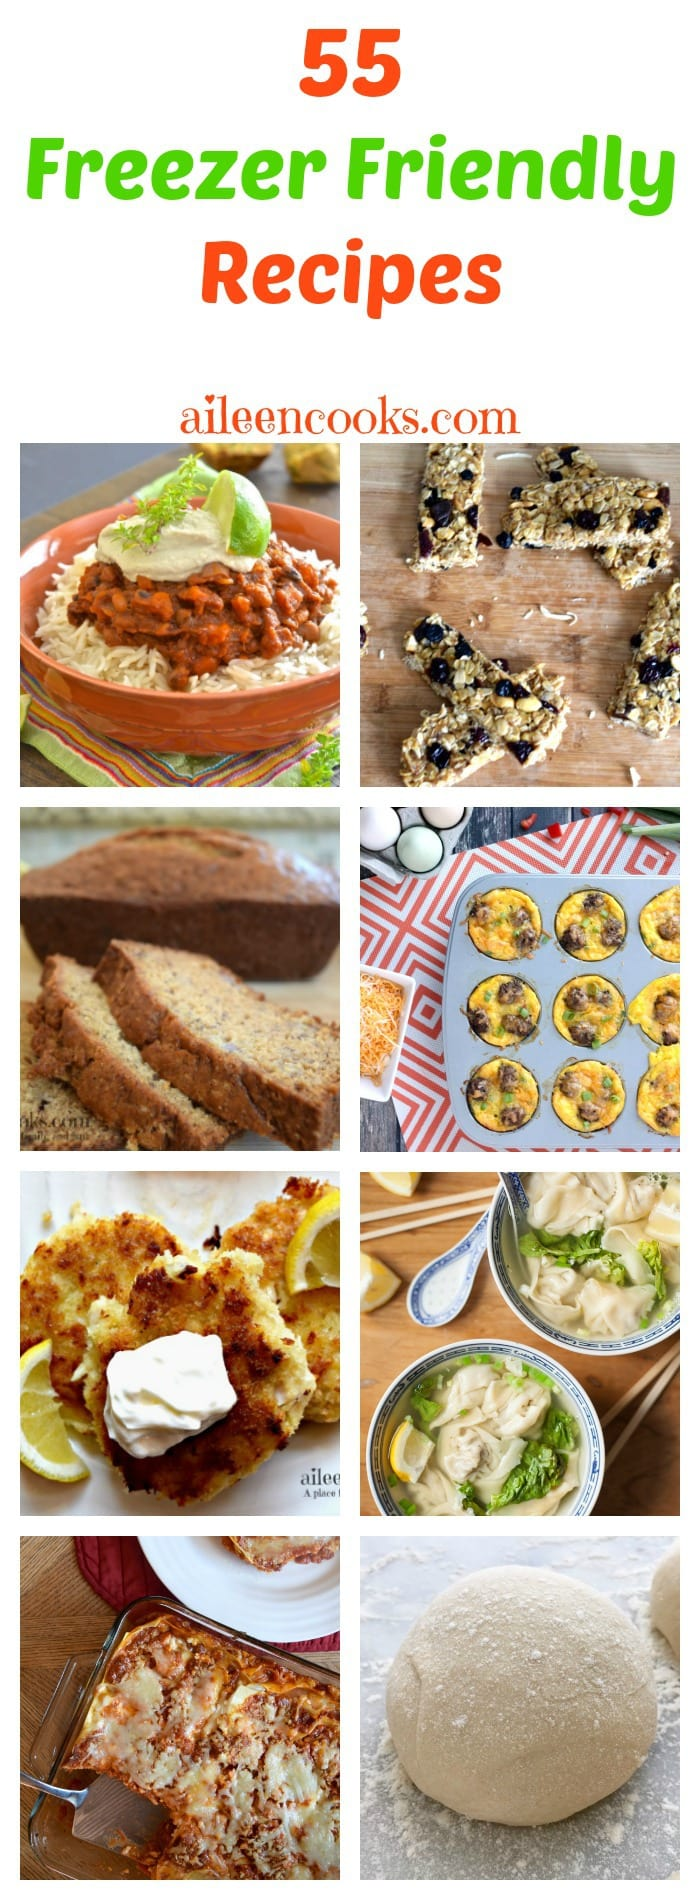 55 Freezer Friendly Recipes inlcuding breakfast, lunch, dinner, snack, and dessert recipes - all ready to be made into freezer meals. https://aileencooks.com